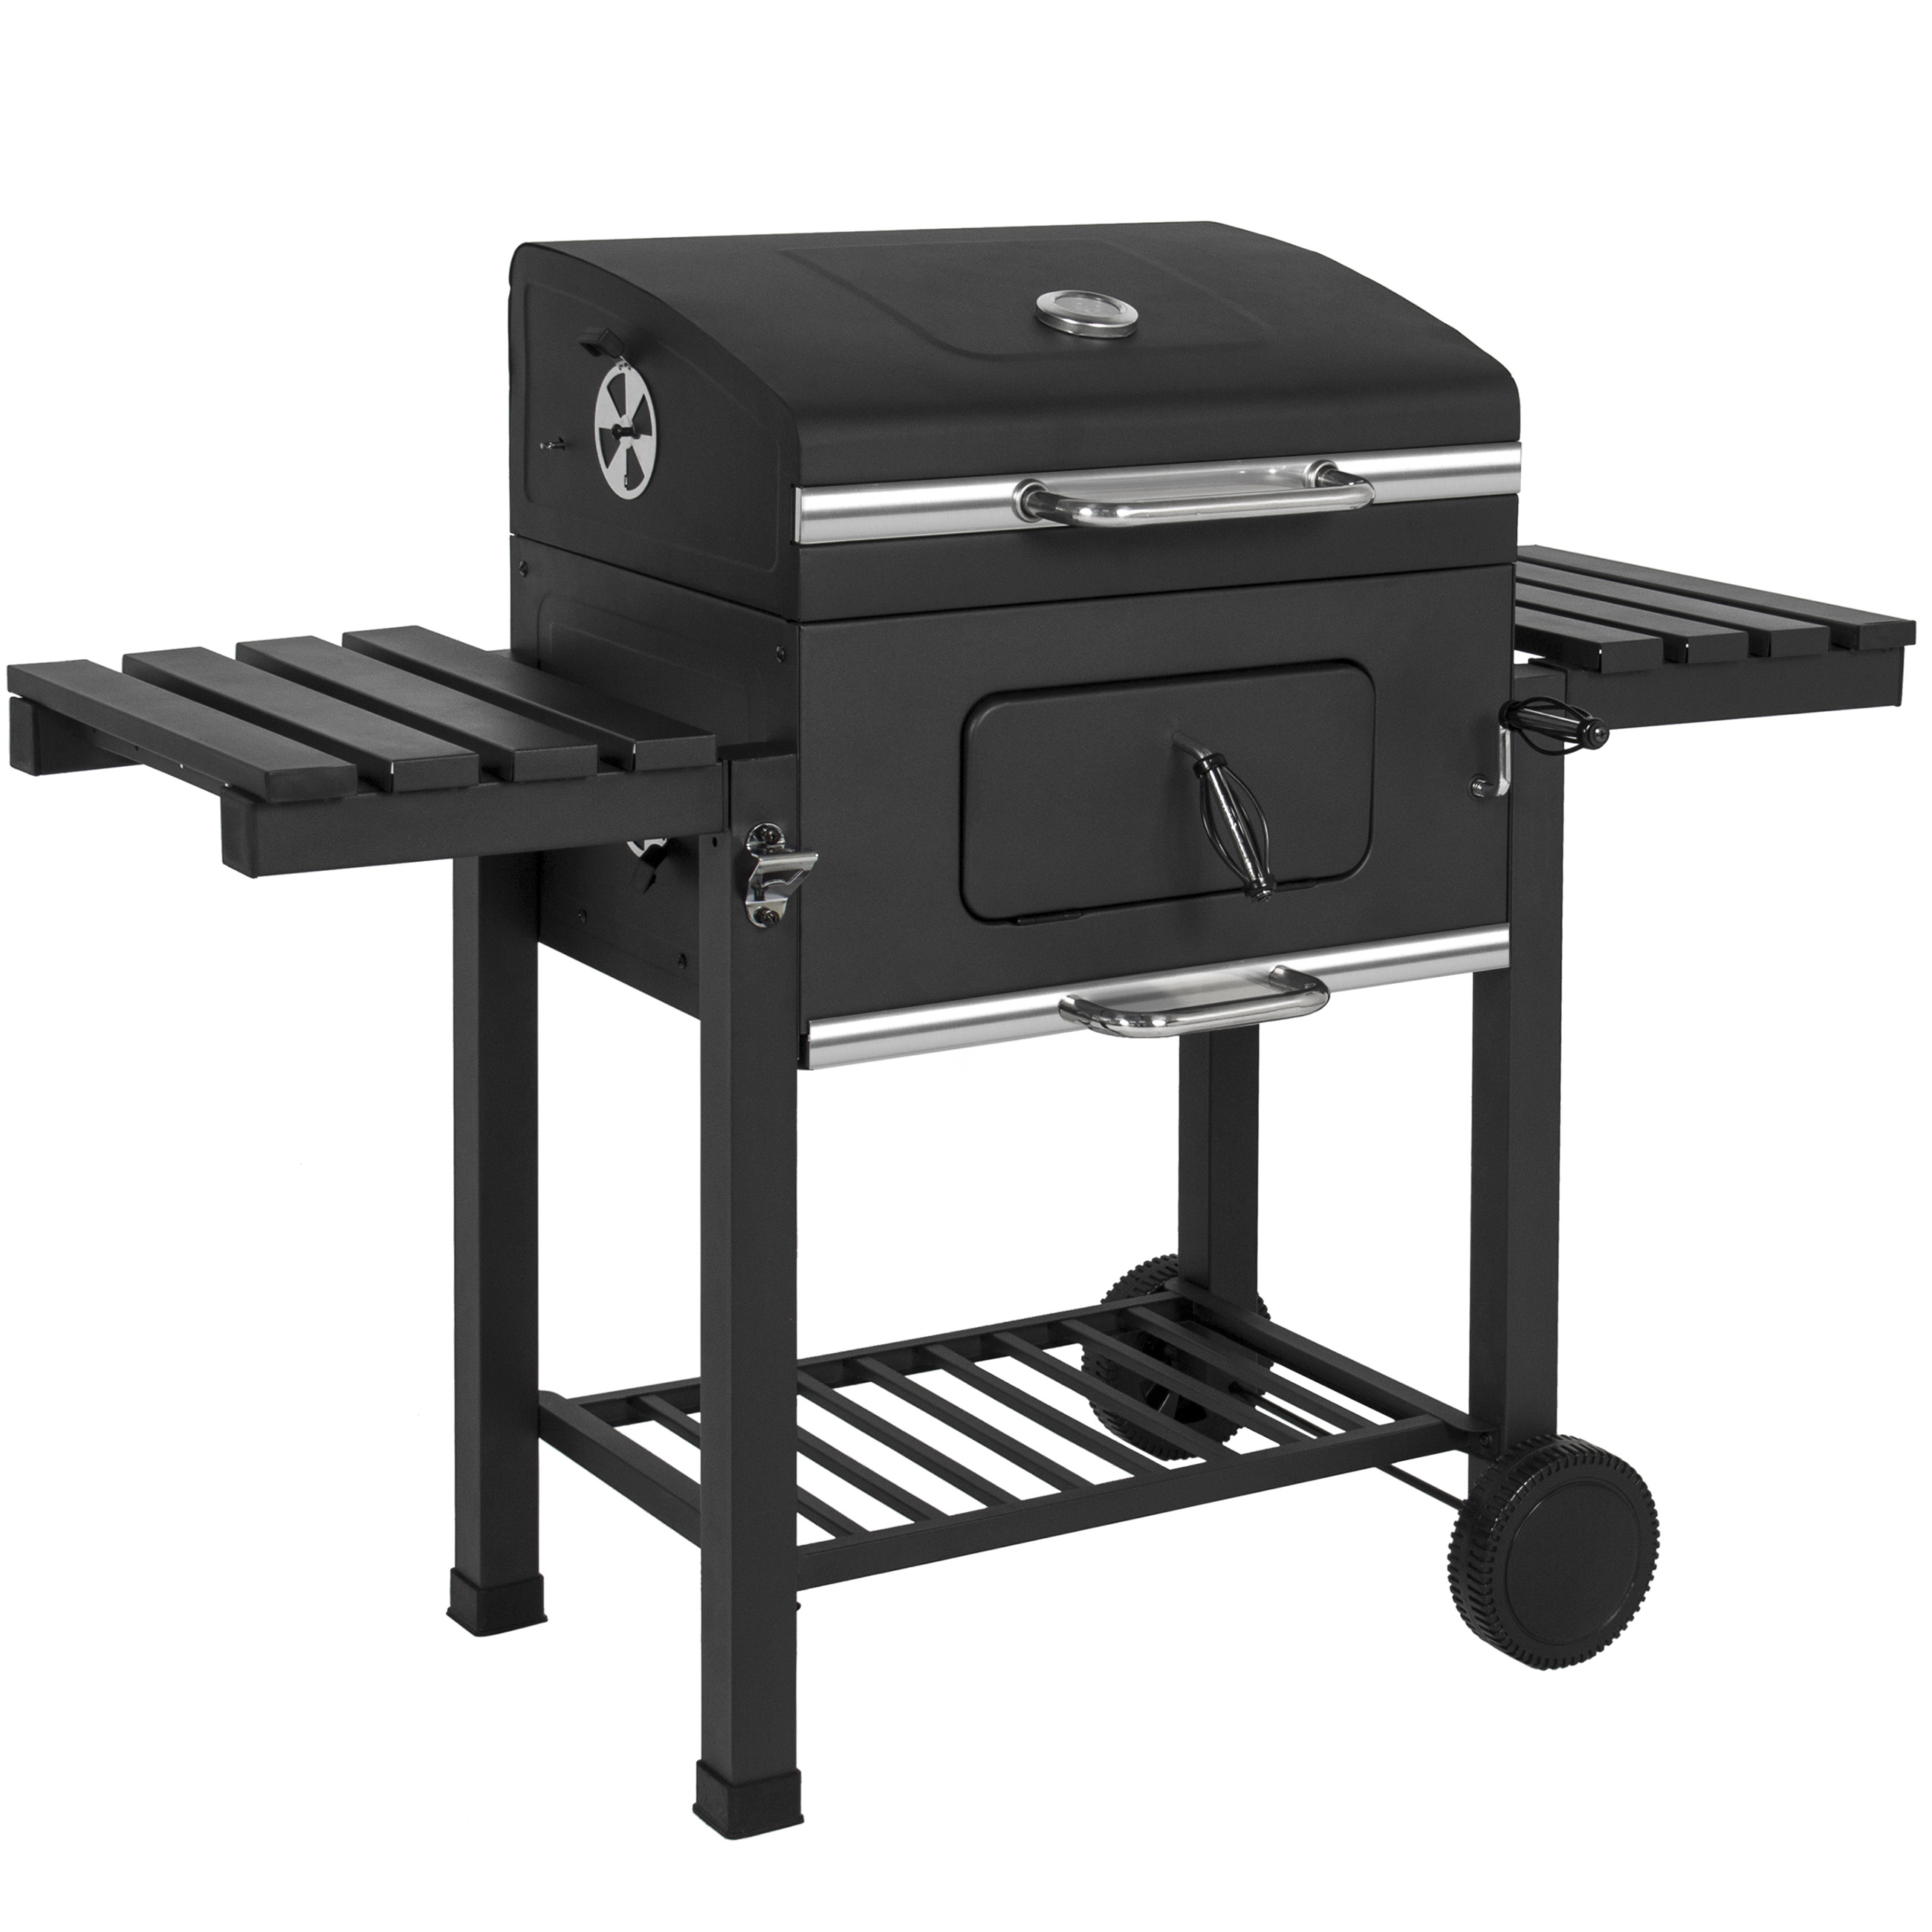 Best Choice Products Premium Barbecue Charcoal Grill Smoker Outdoor Backyard BBQ by Charcoal Grills